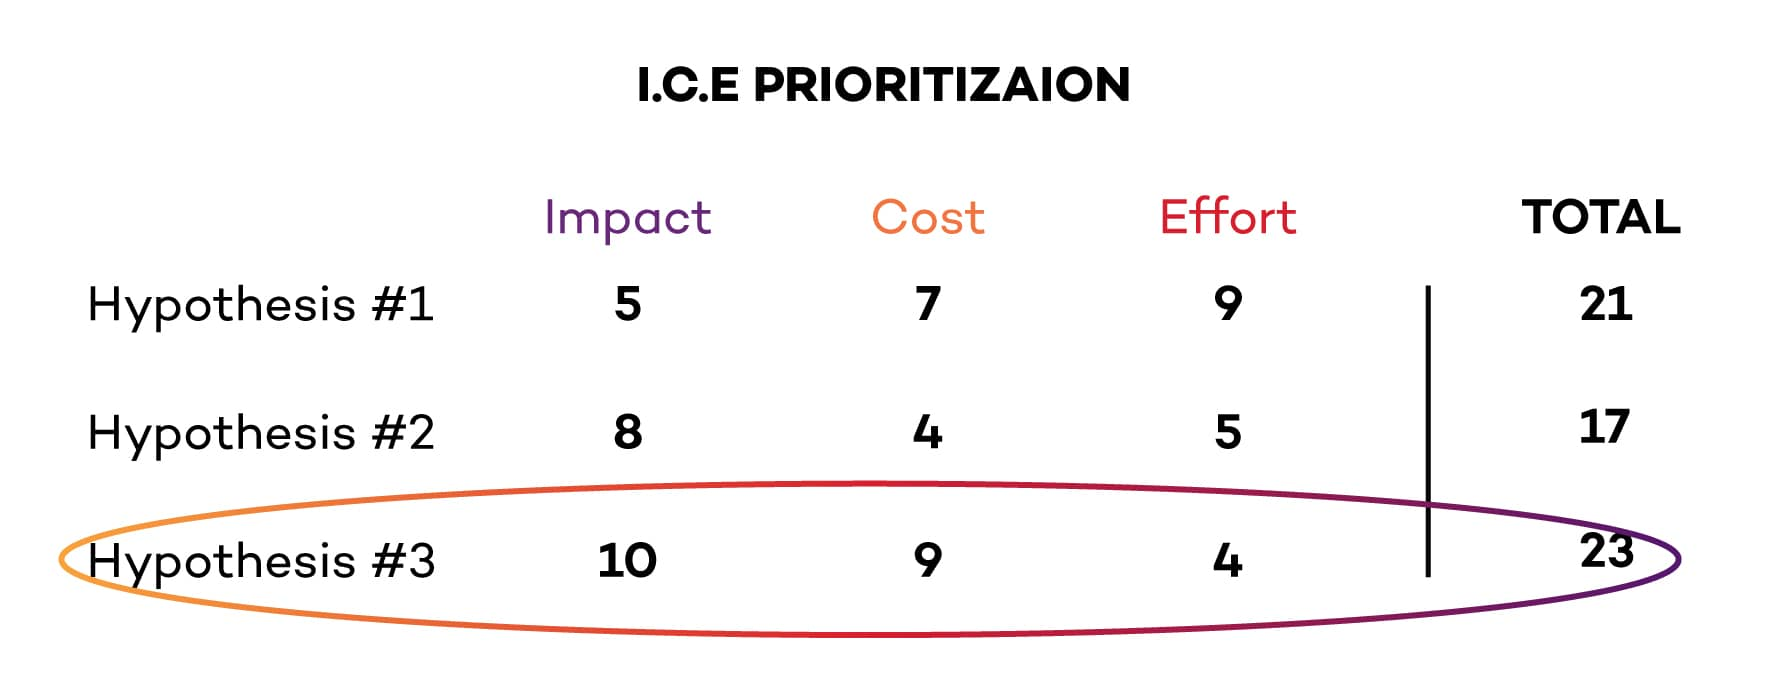 ICE-Prioritization-model-Example